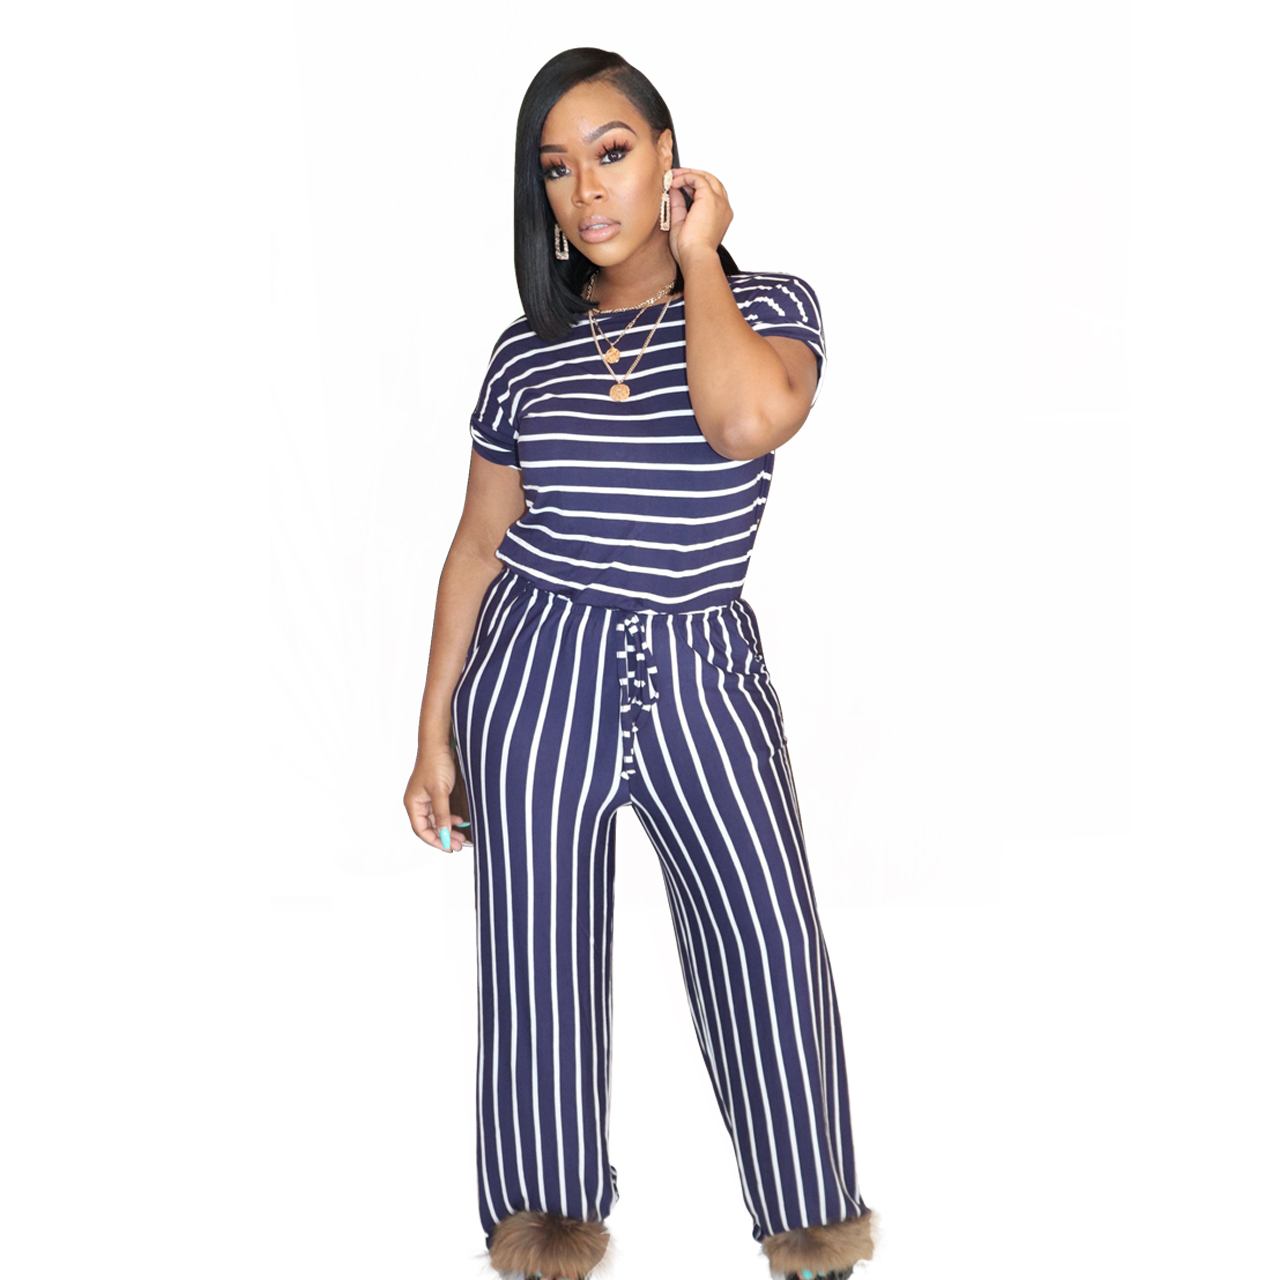 H3ab5610936374865953dc7f70675e264Y - Fashion Women Stripes Jumpsuits Summer New Arrival Short Sleeves Crew Neck Women Casual Rompers Loose Daily Wear Outfits